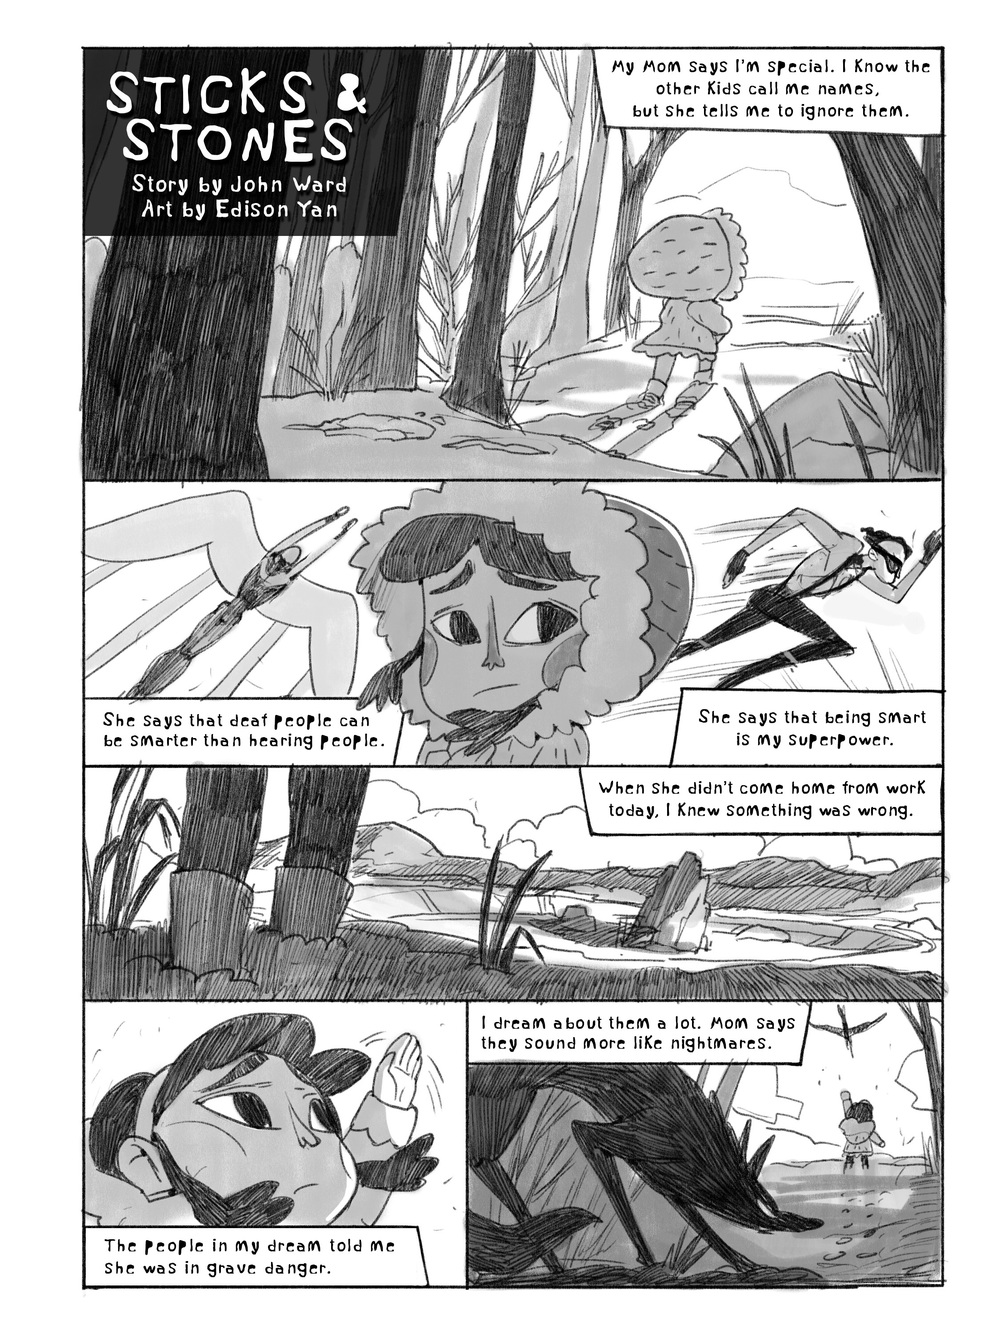 Sticks&Stones_Page01b_final.jpg